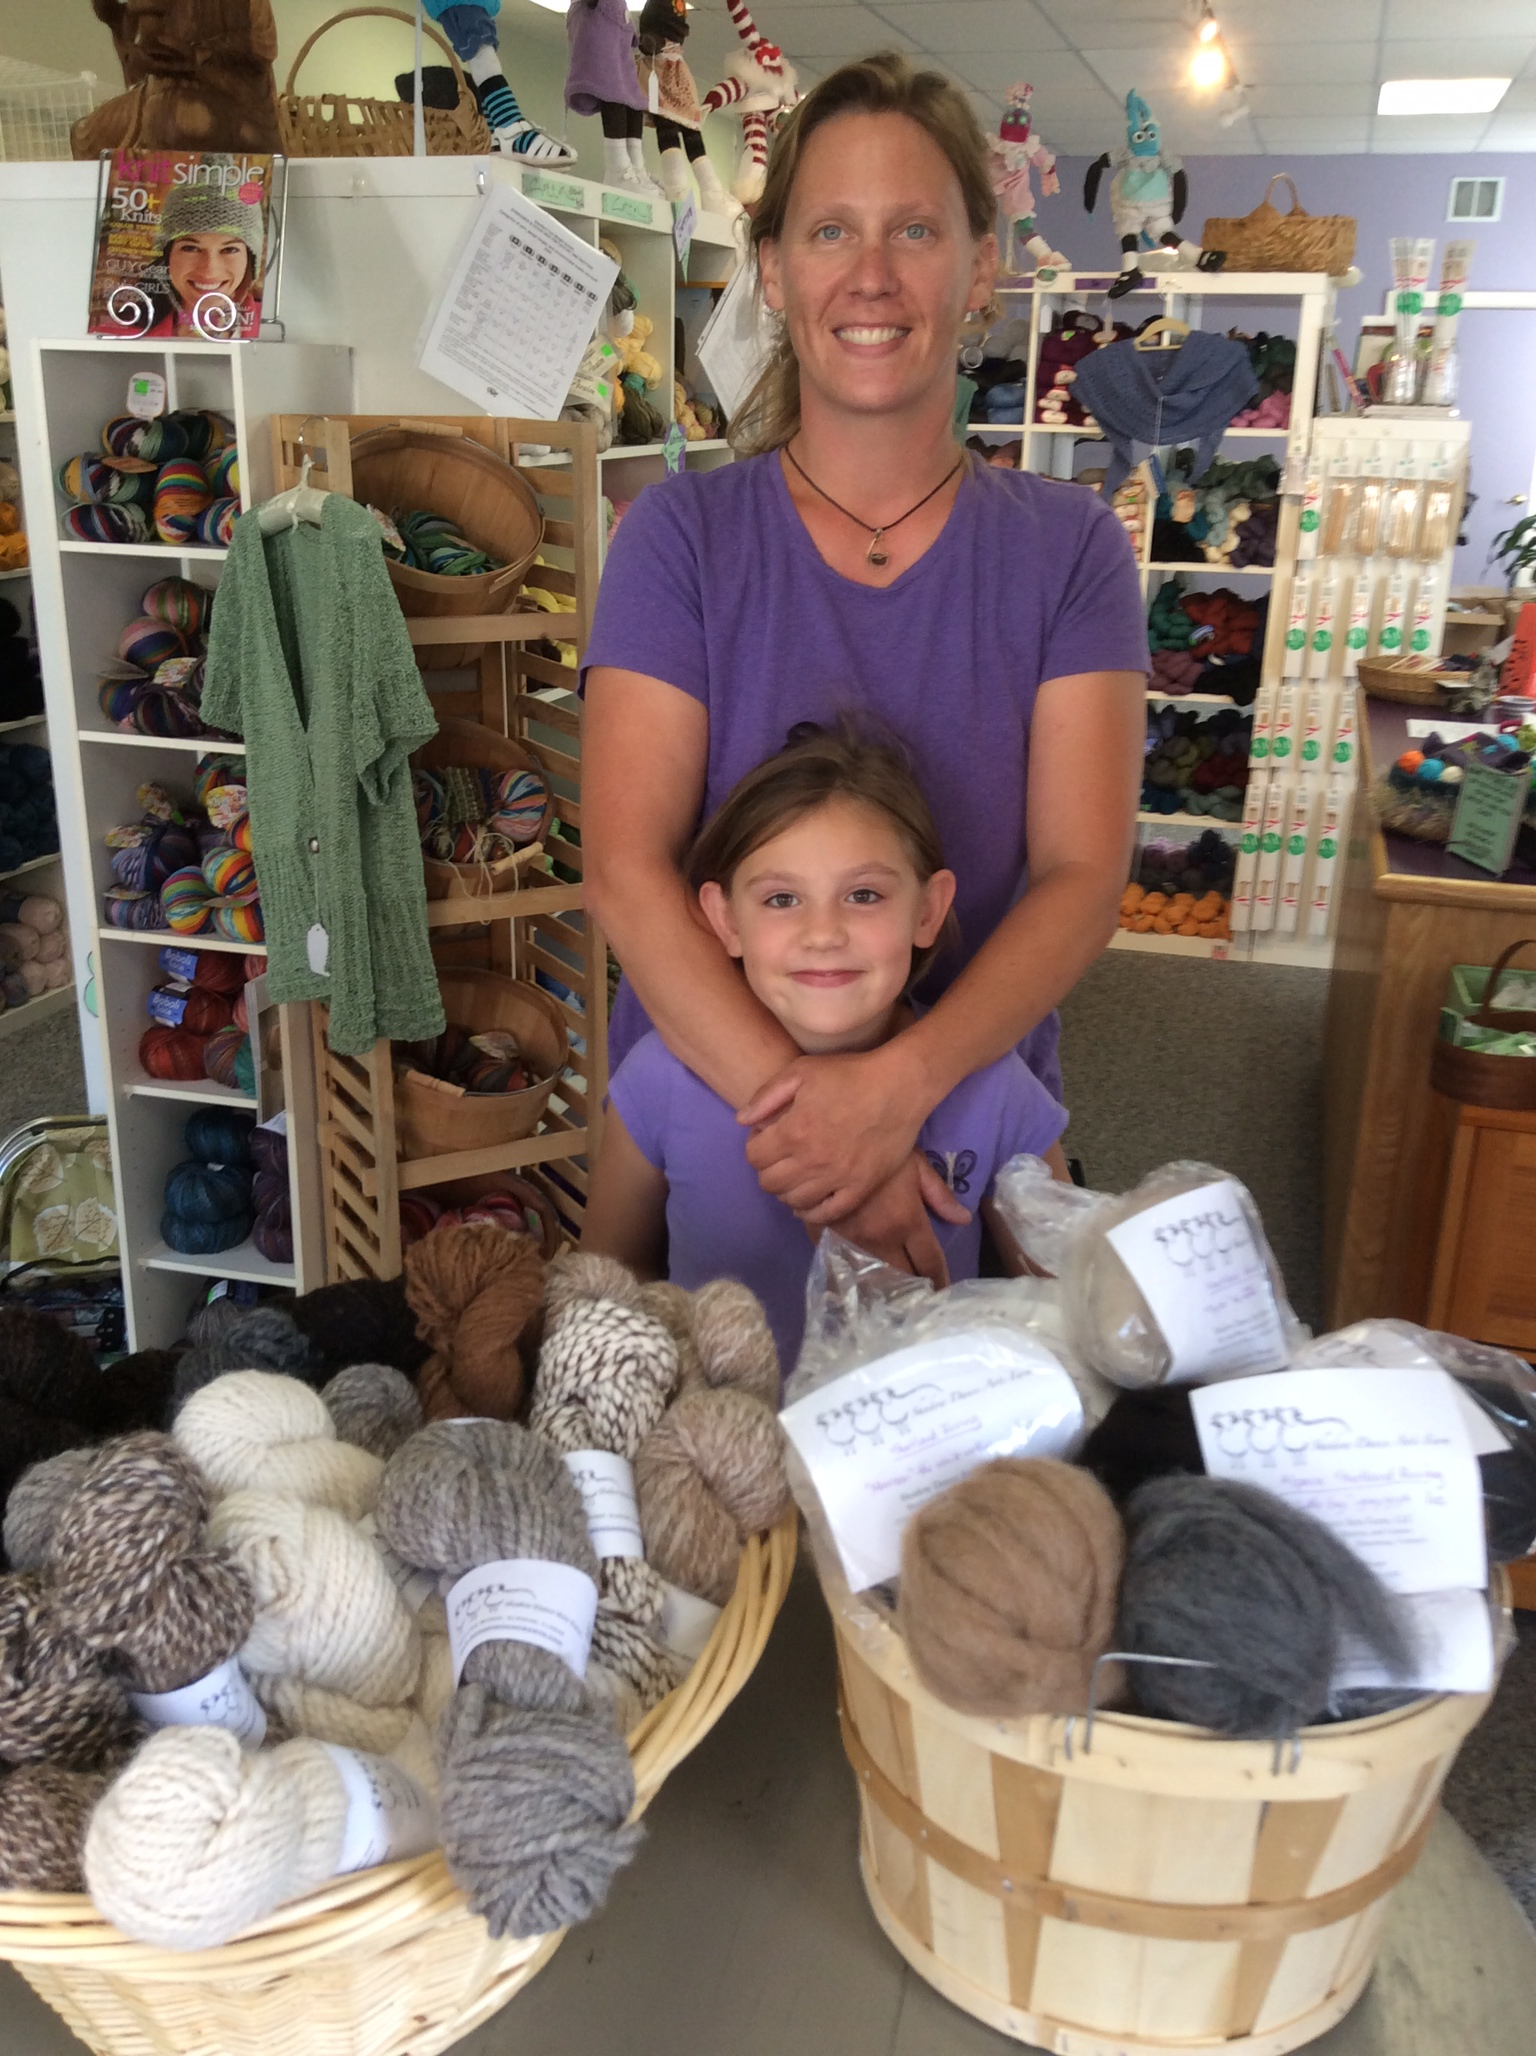 Kelly and her daughter Vivian of Shadow Dancer Arts Farm have just delivered their alpaca yarn and rovings.  All natural, no dyes, this yarn is beautifully hand-spun.  You have to touch it!